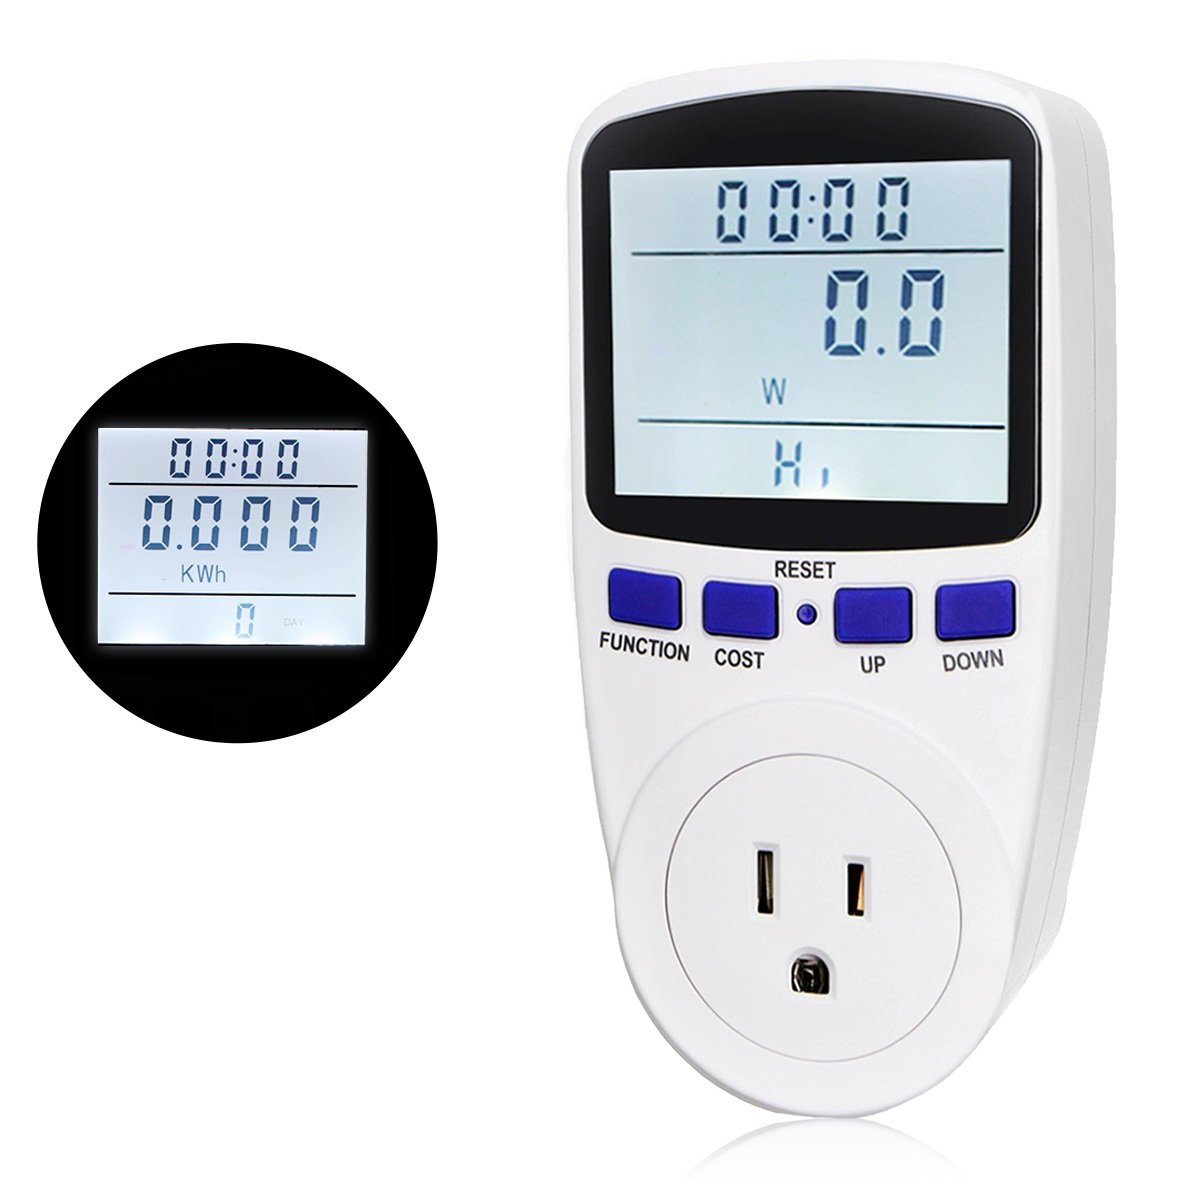 RioRand Plug Power Meter Socket Energy Watt Voltage Amps Meter with Backlight Reduce Your Energy Costs